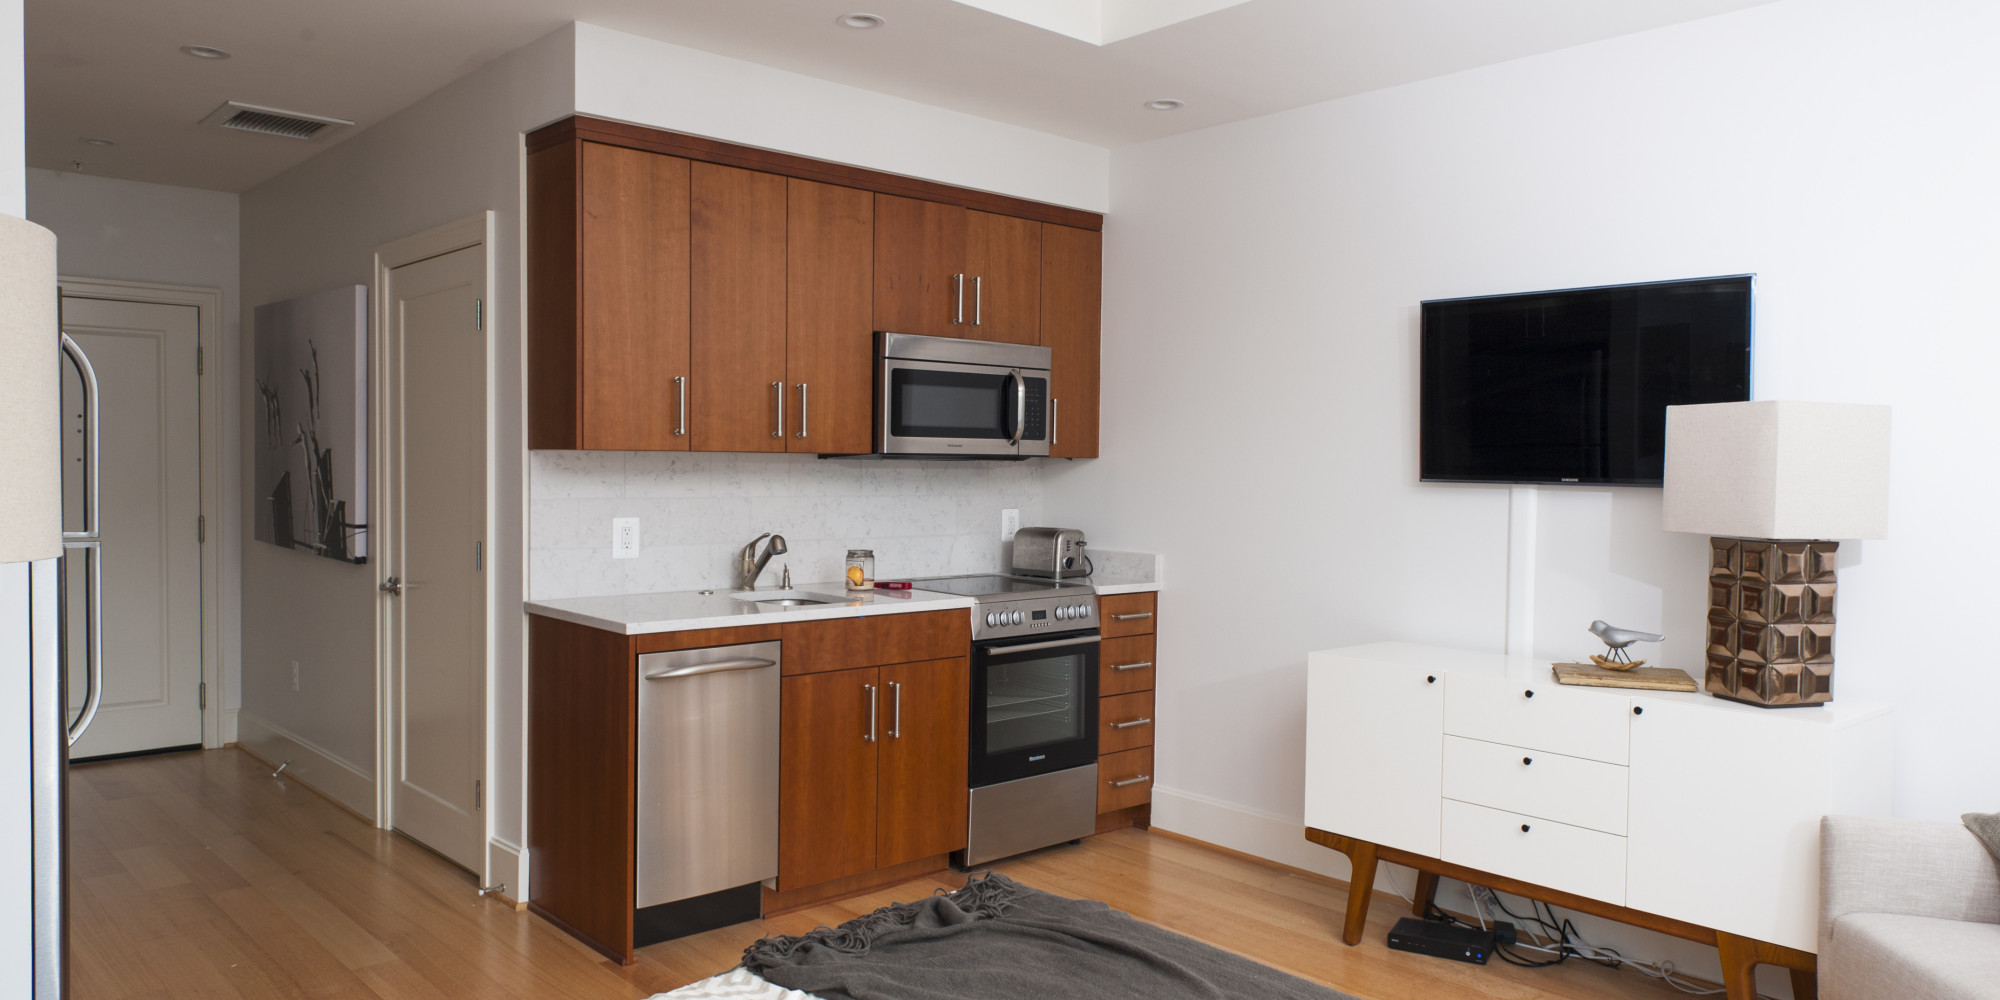 Micro Living Apartment Big Ideas For Micro Living Trending In North America